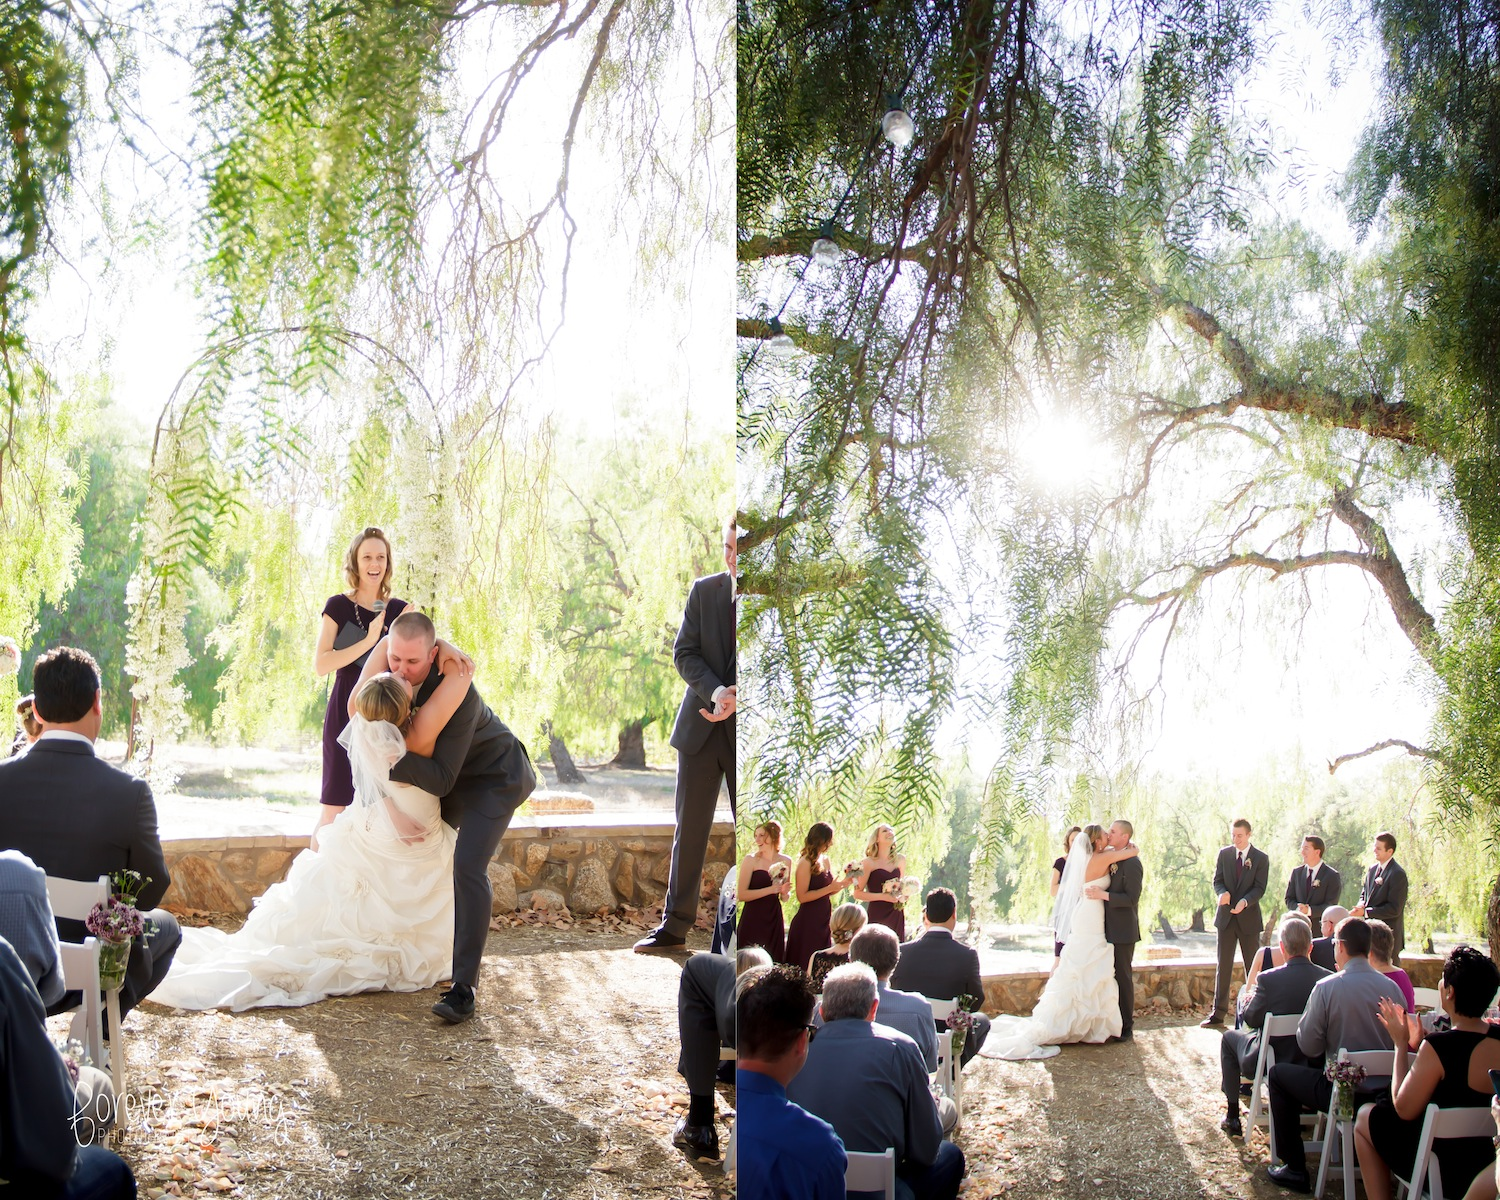 Taylor & Travis York | Red Barn Ranch Wedding | San Diego, CA 11